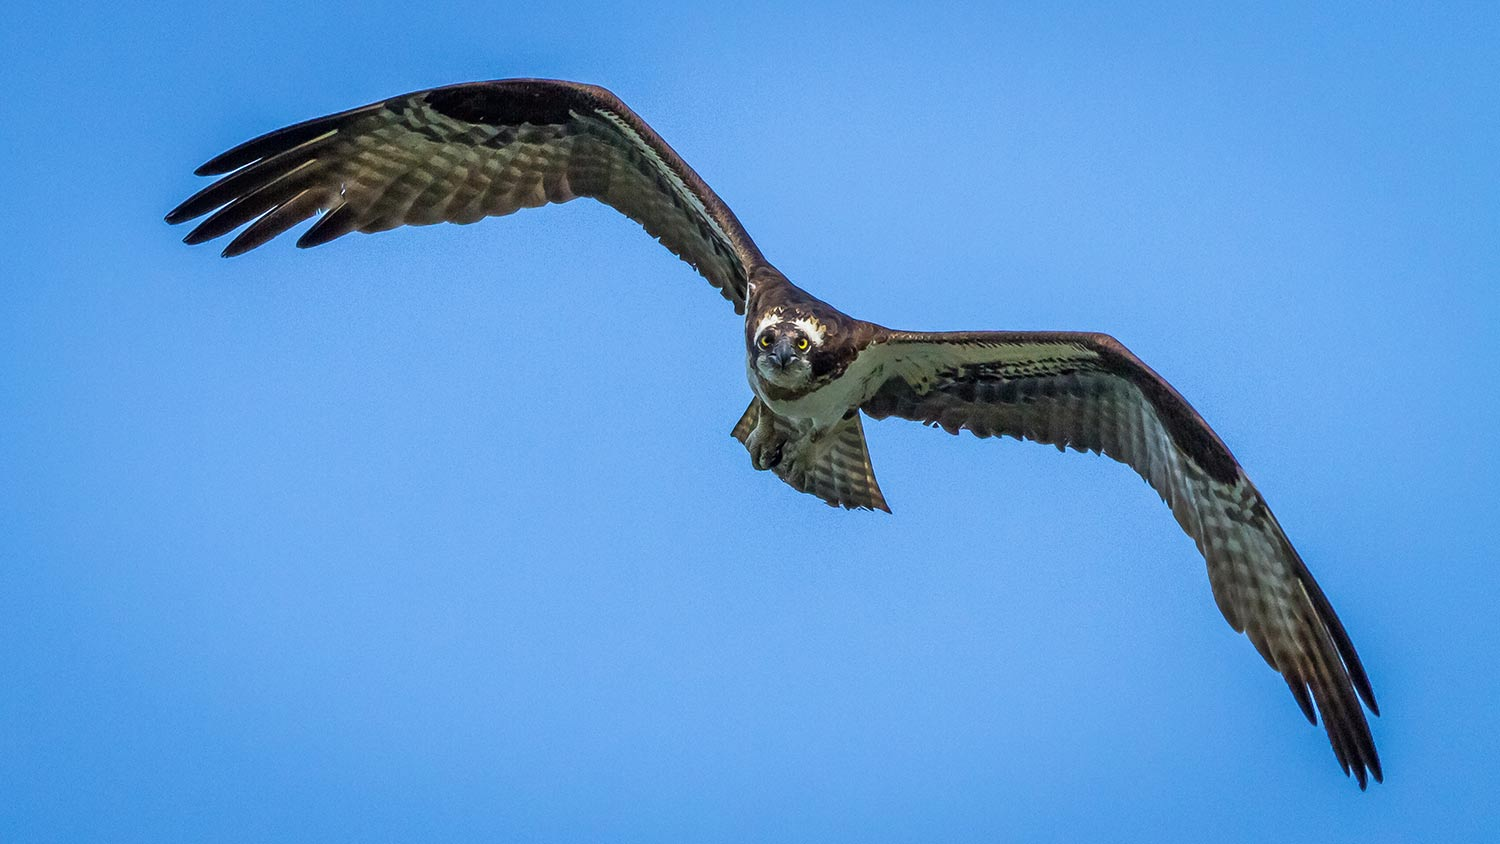 This osprey was watching me as I got this shot from my kayak. Boxboro, MA